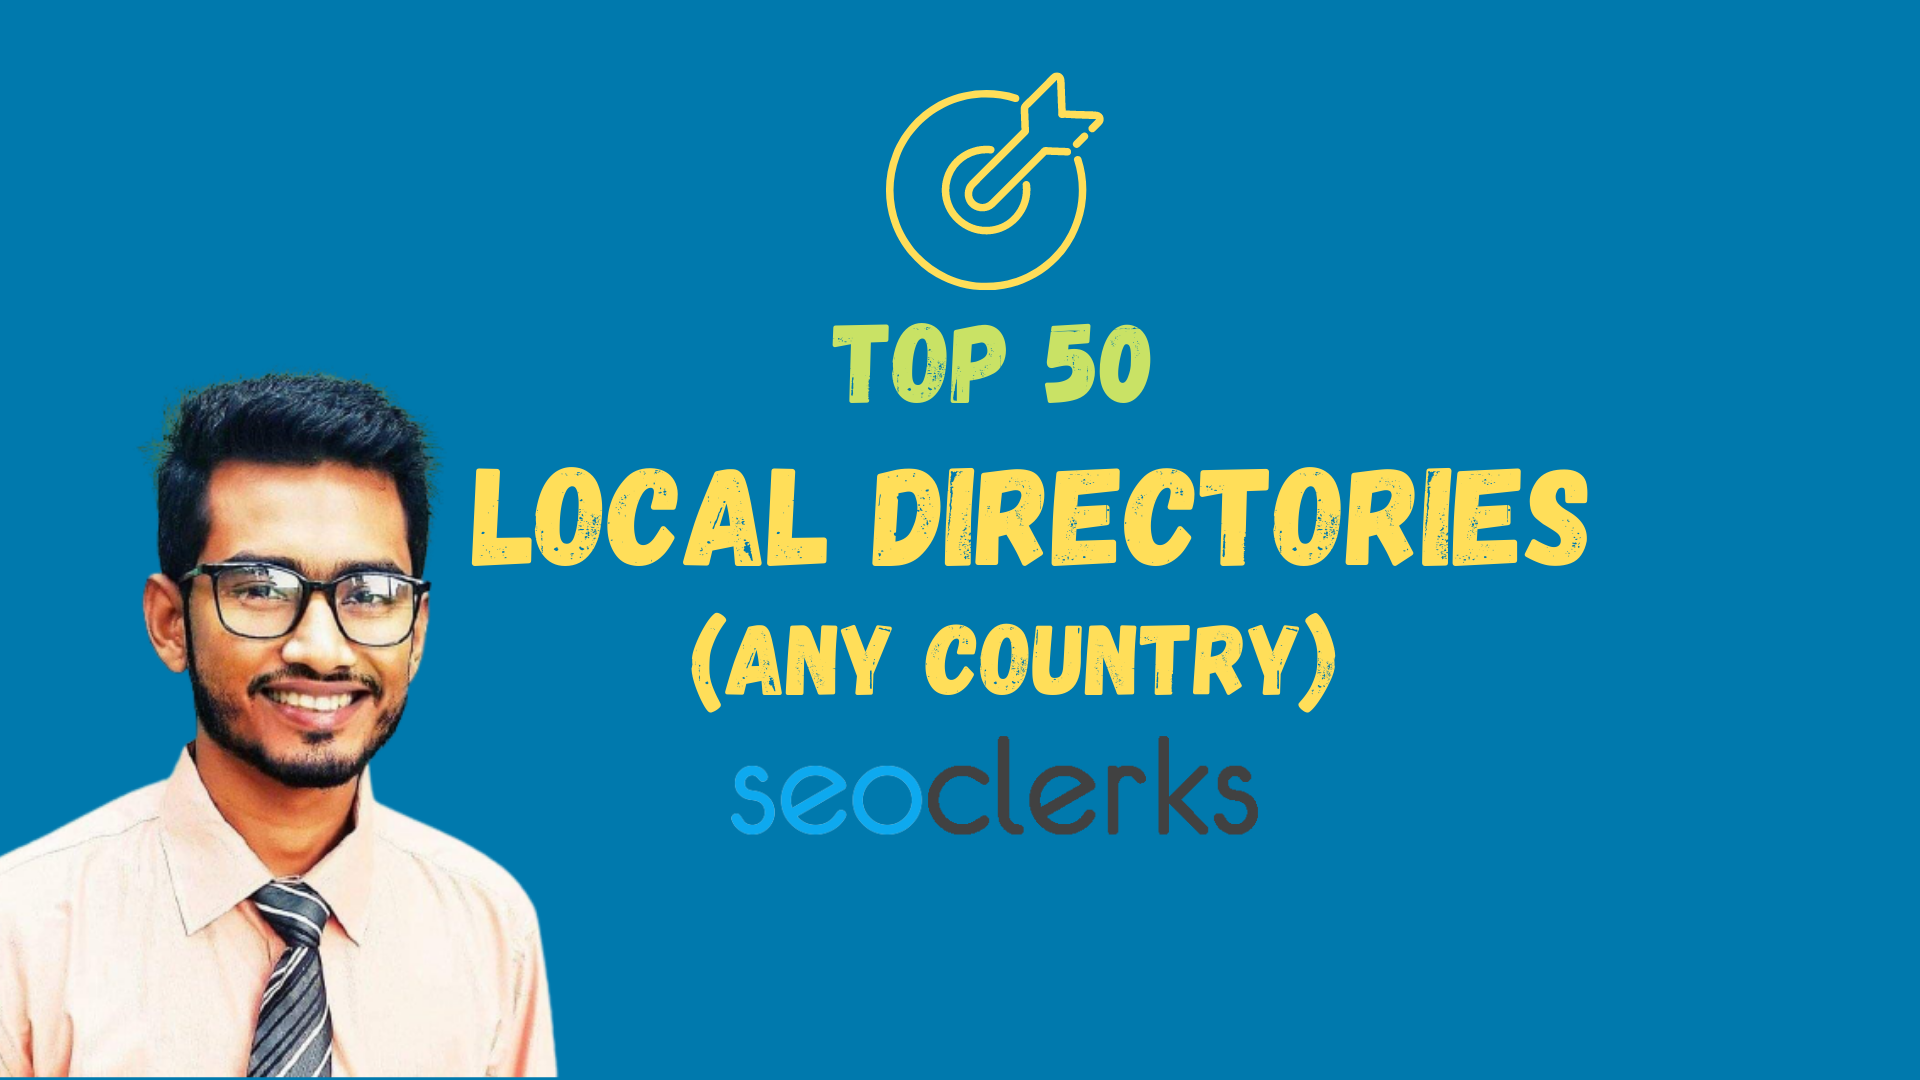 Get The Top 50 Local Directories Any Country